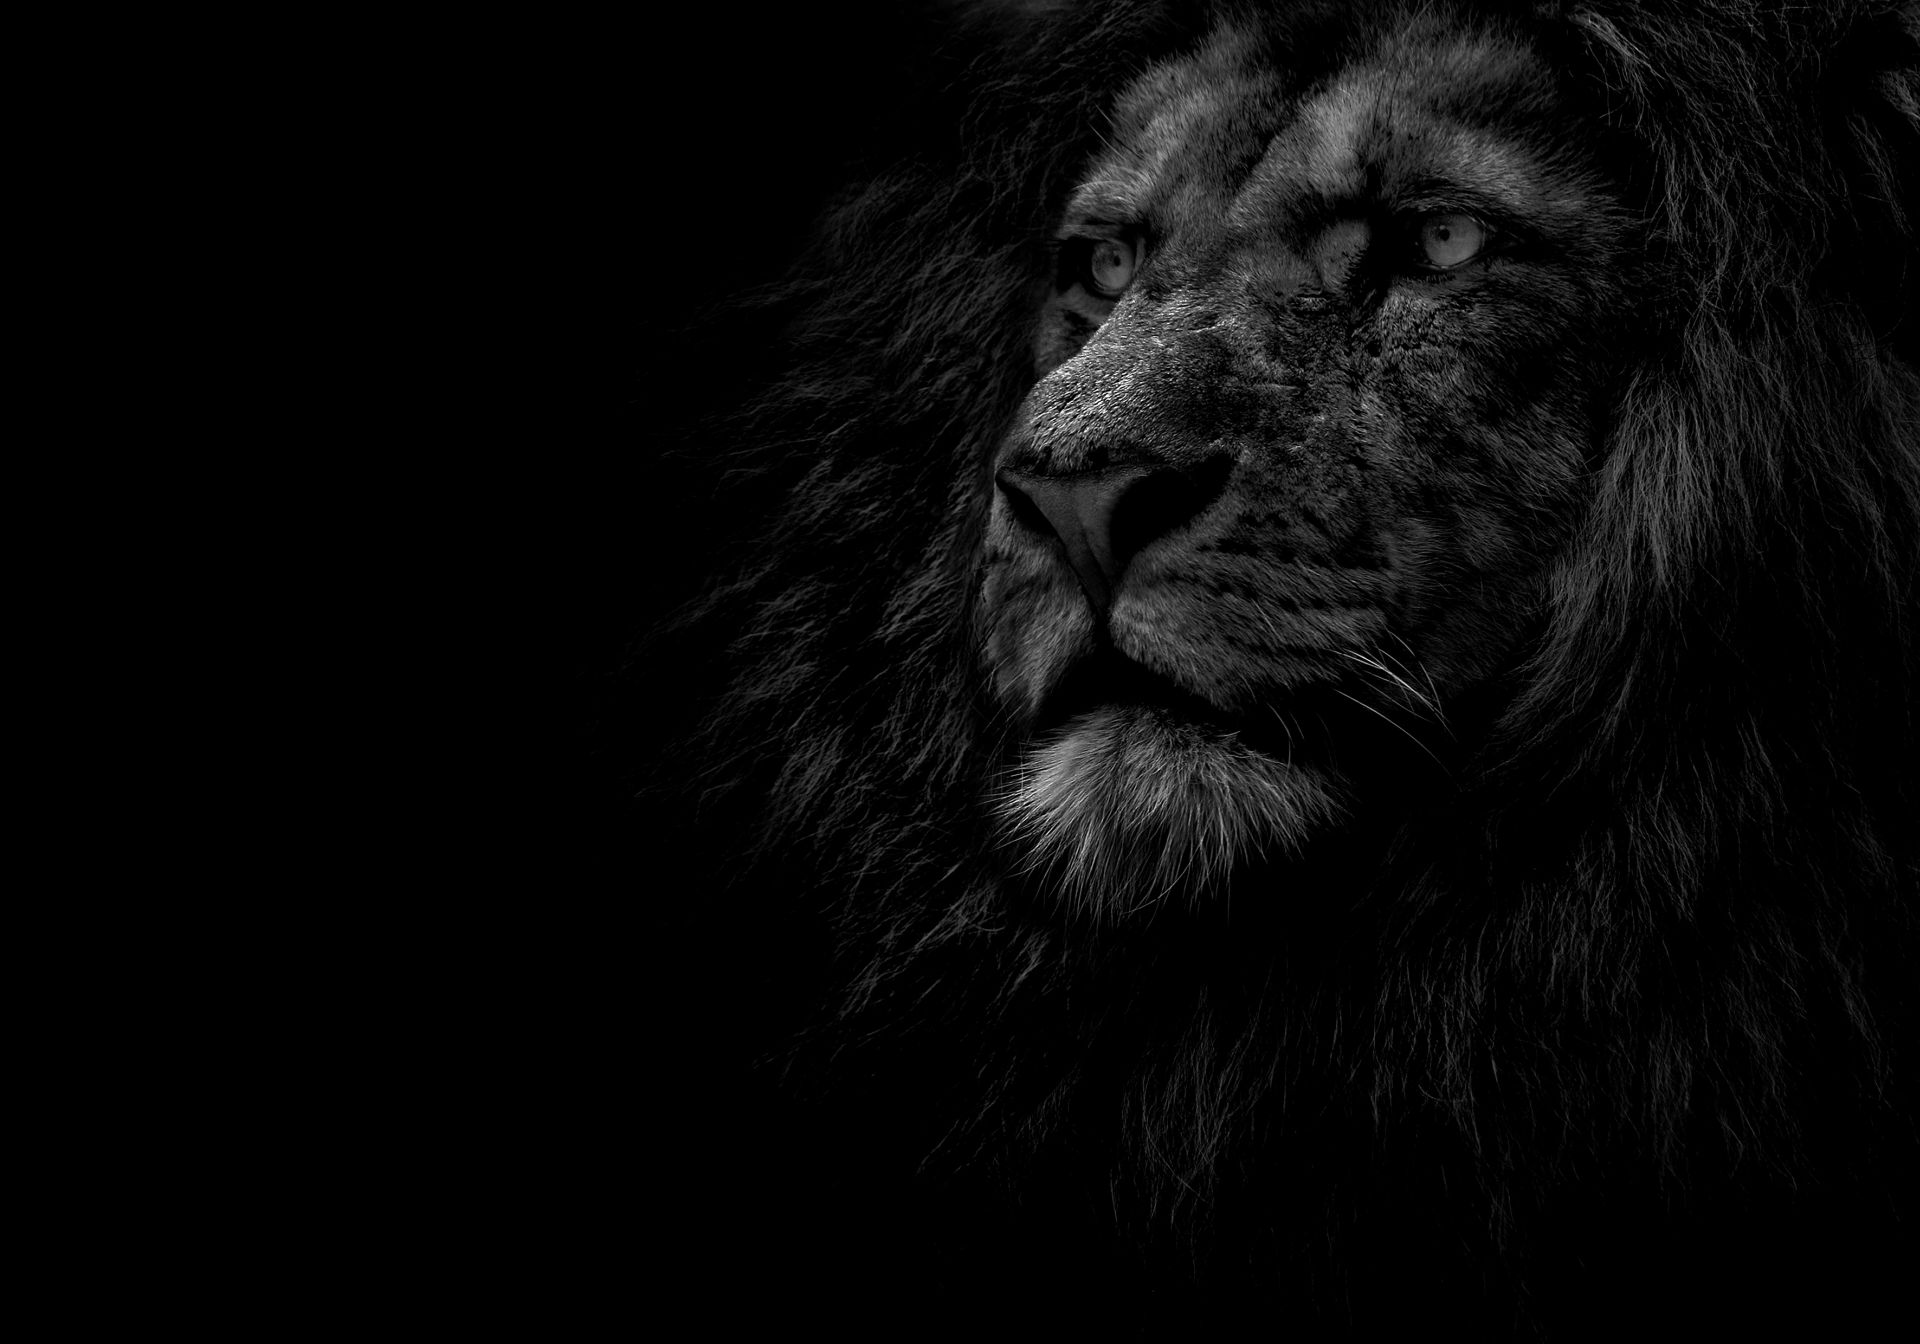 Lion Black And White Animal vertical wallpaper hd